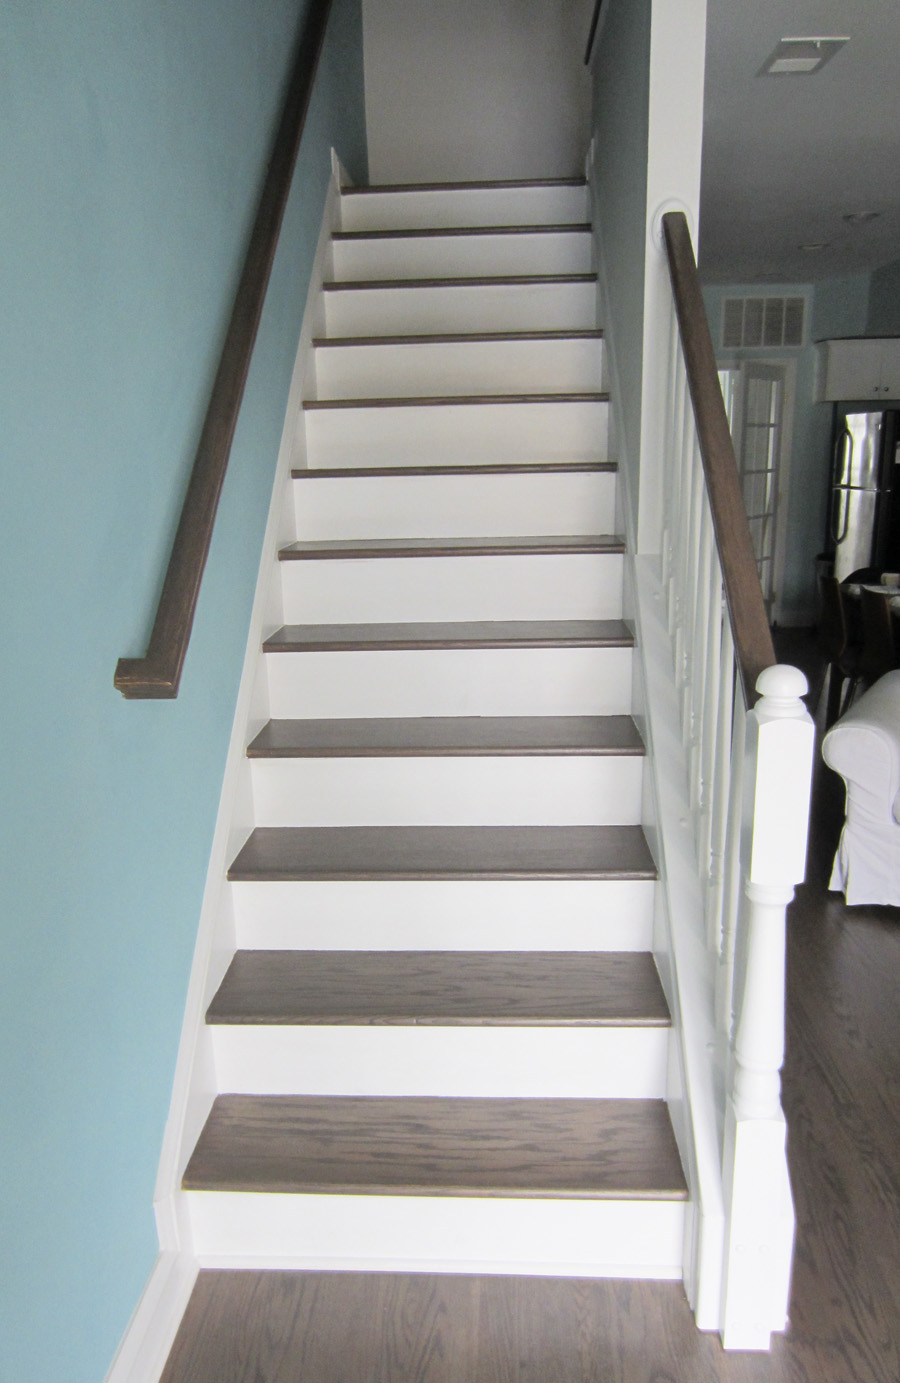 Refinishing the stair well was well-worth the effort!